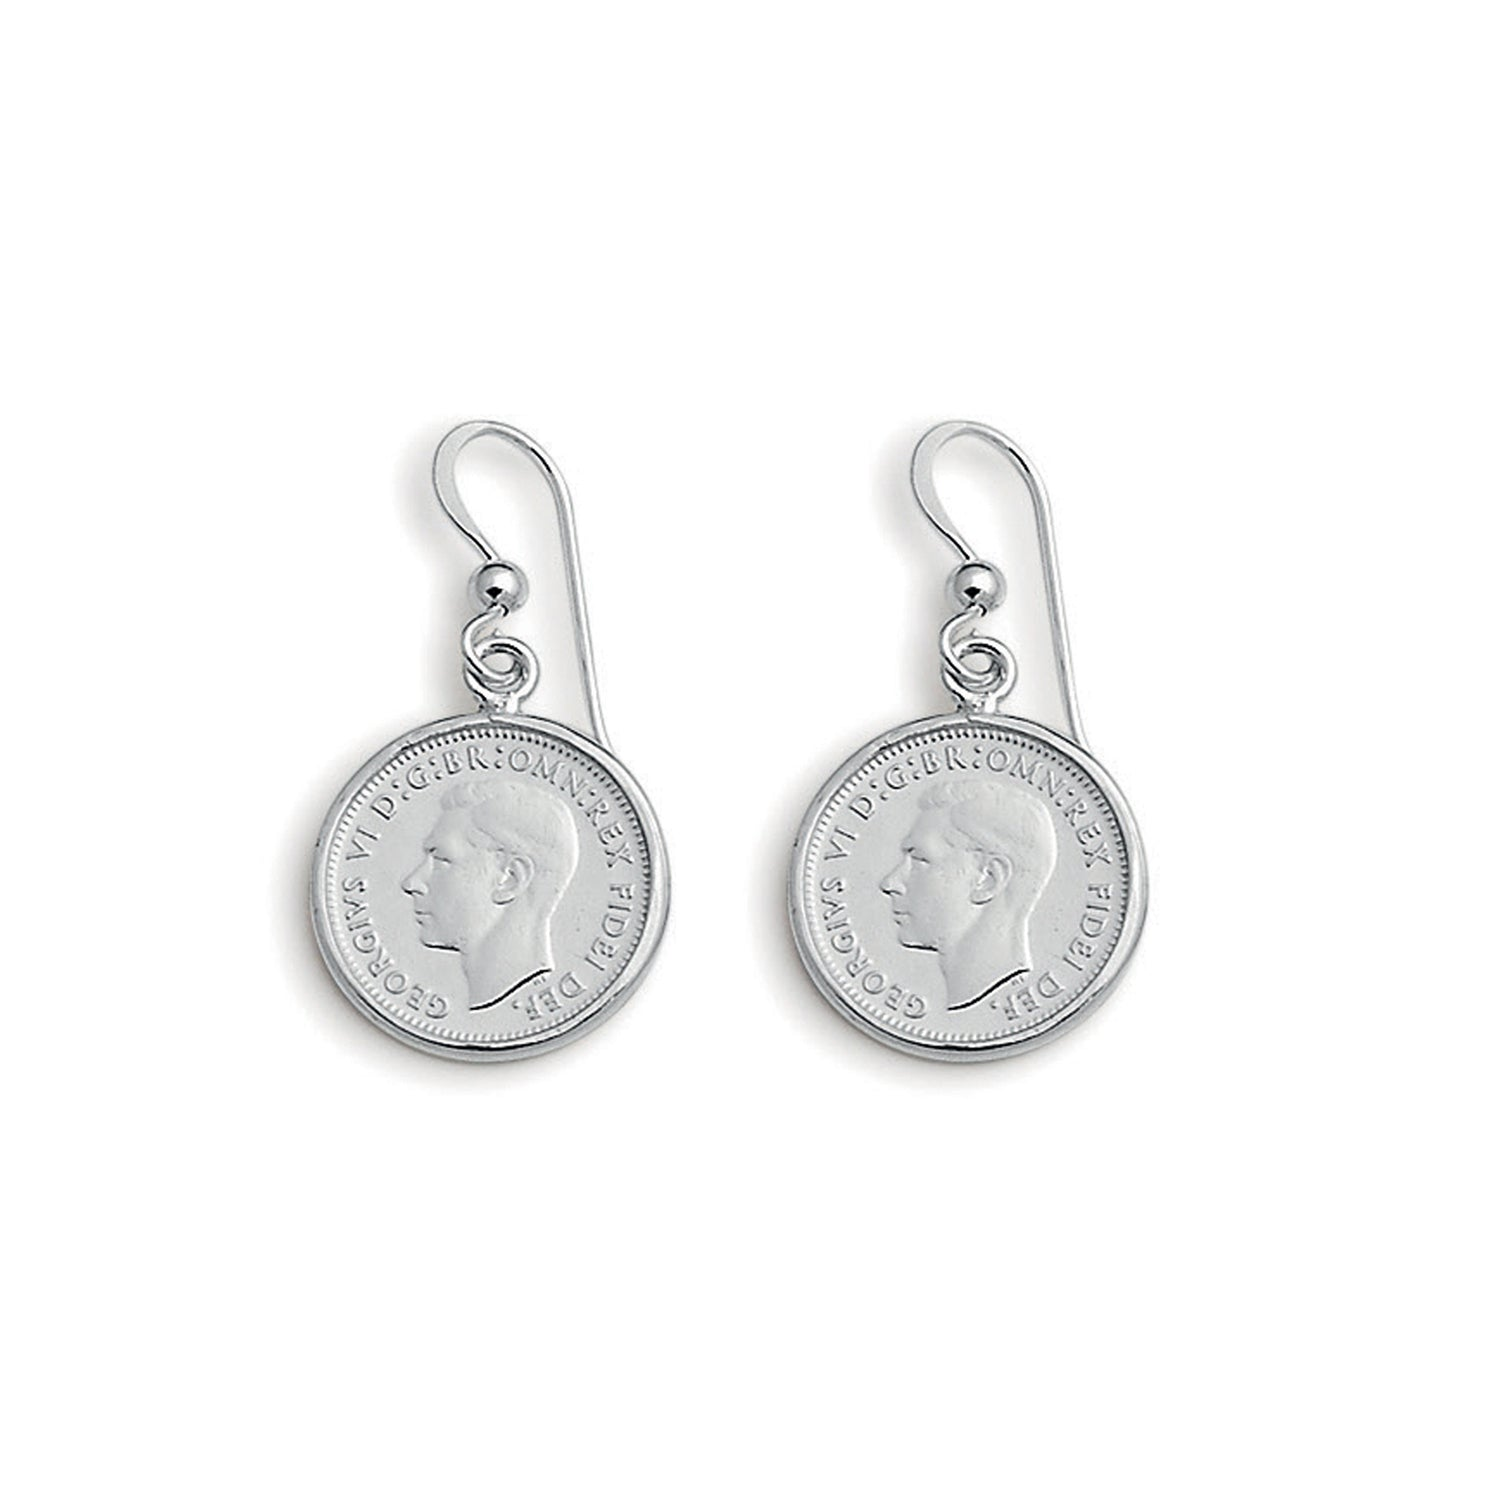 Von Treskow Sterling Silver Authentic 3 Pence Coin Earrings